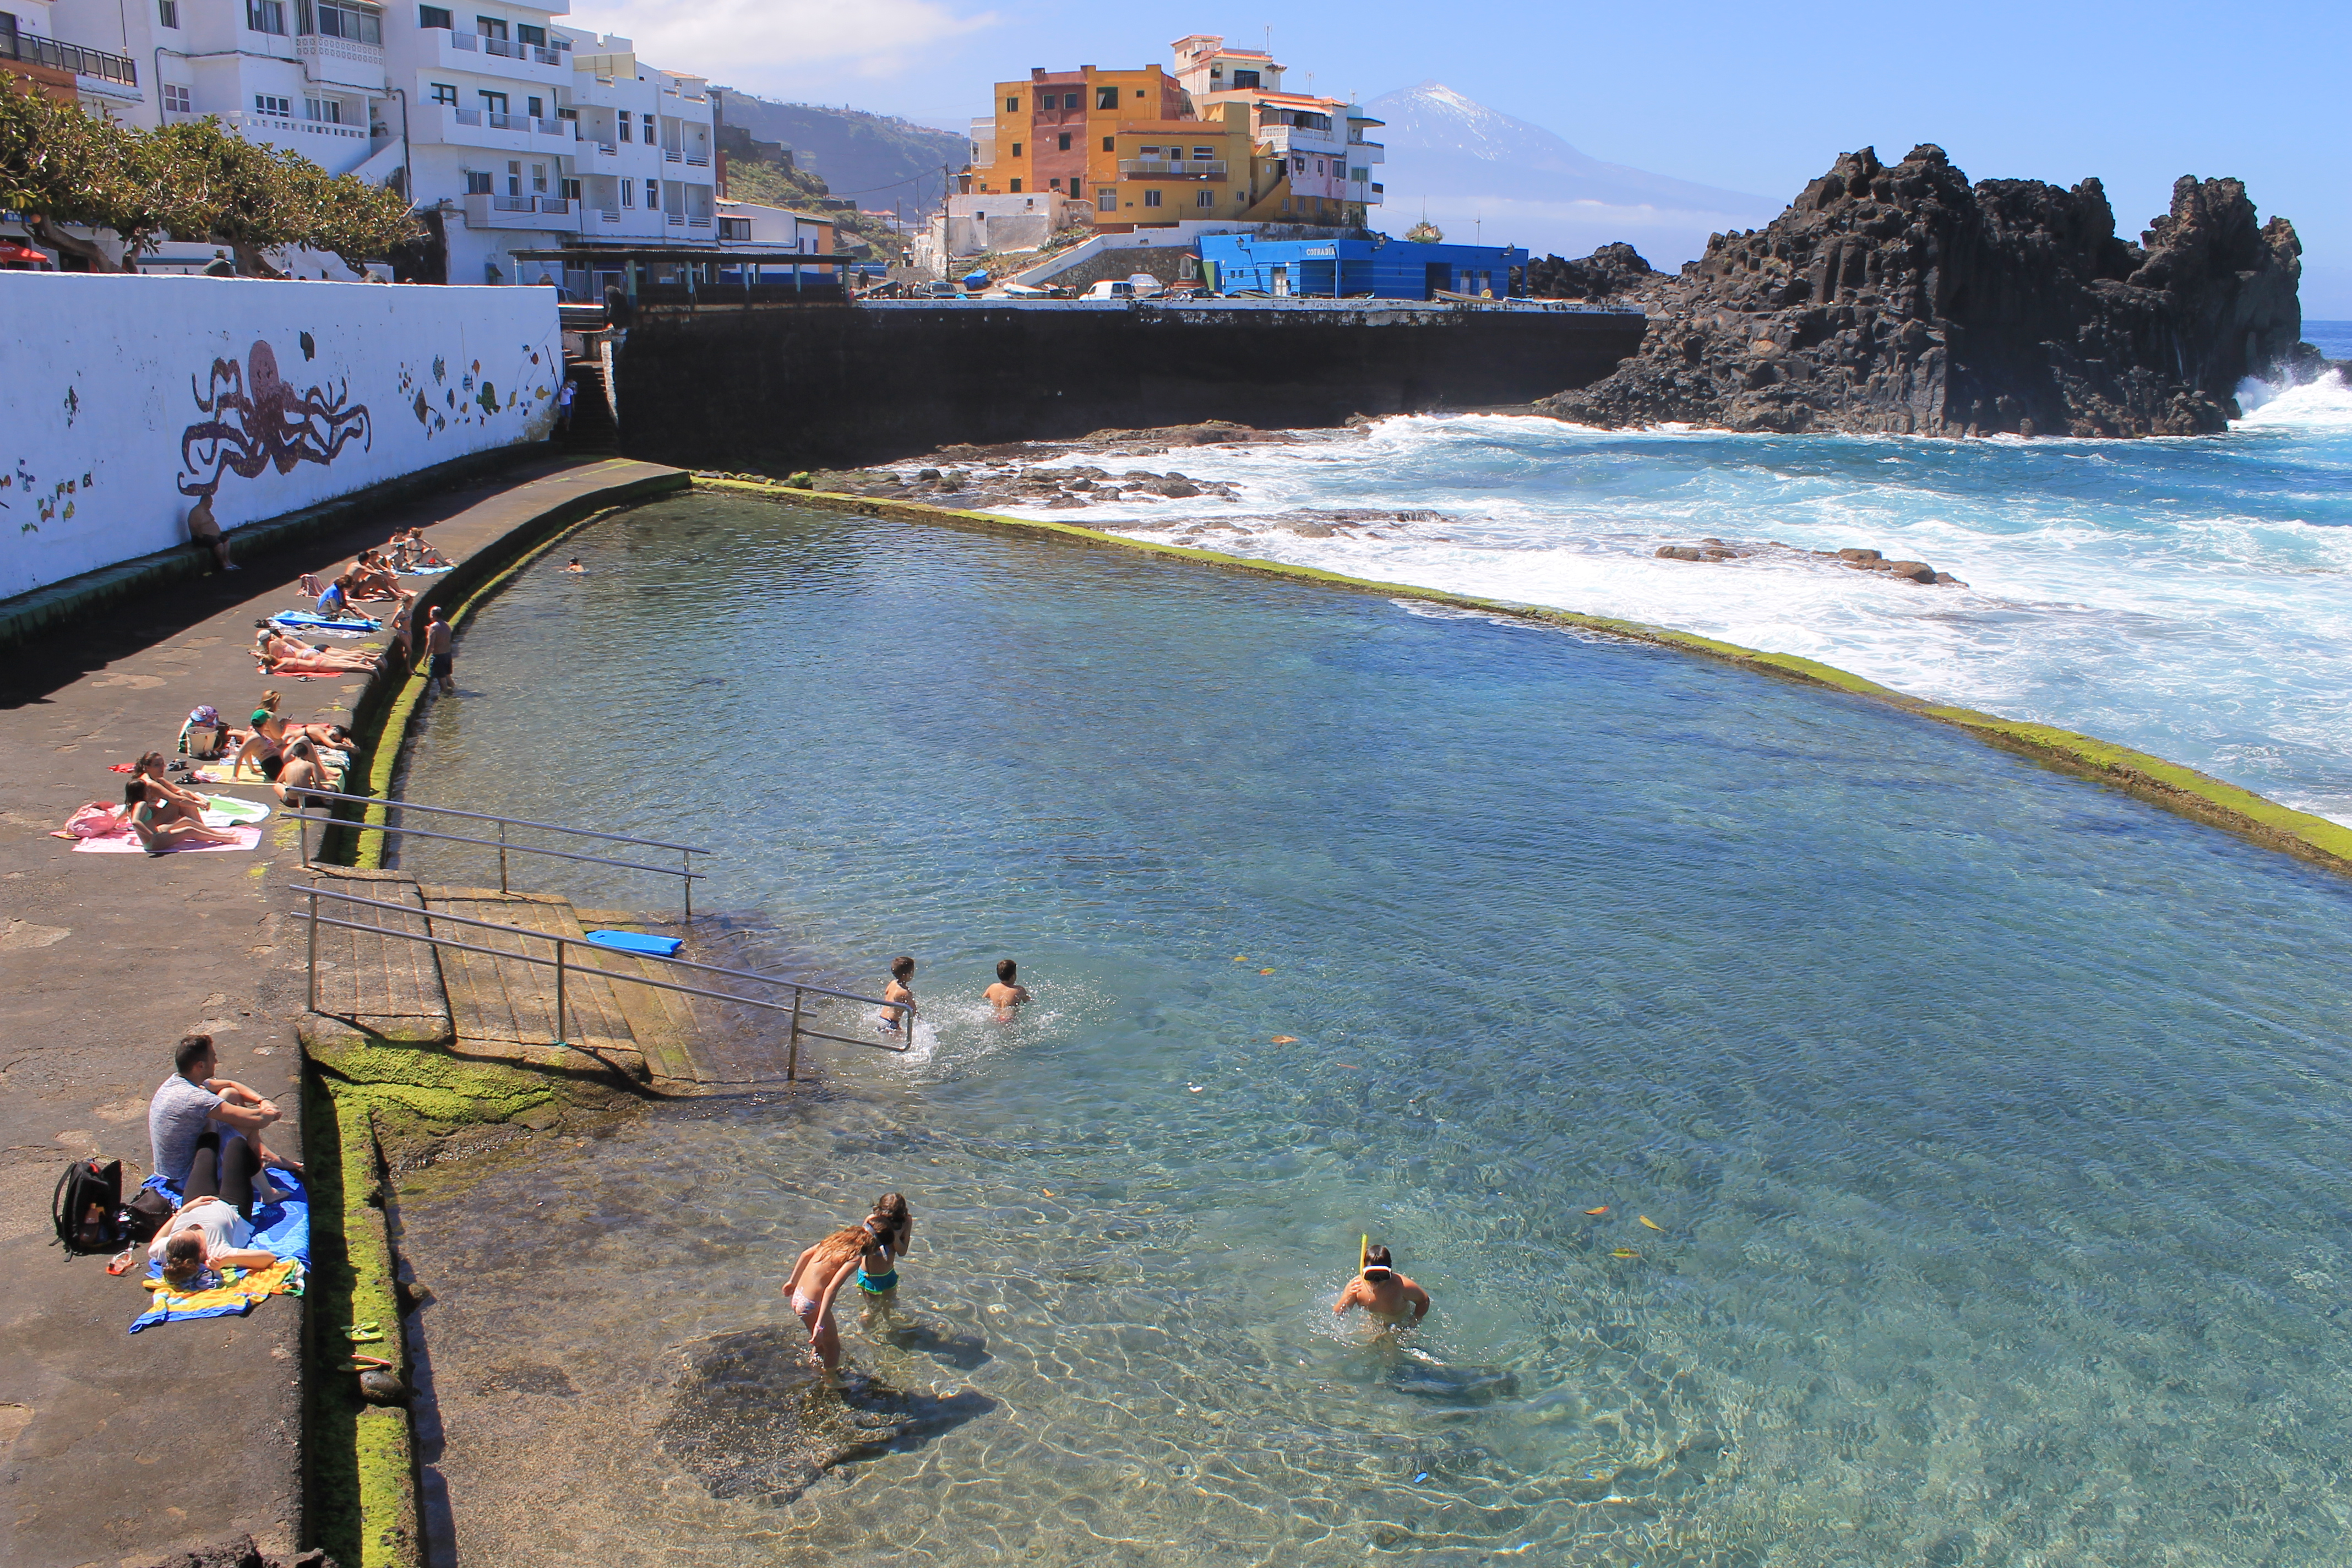 Cinco charcos o piscinas naturales para descubrir en for Piscina natural tenerife